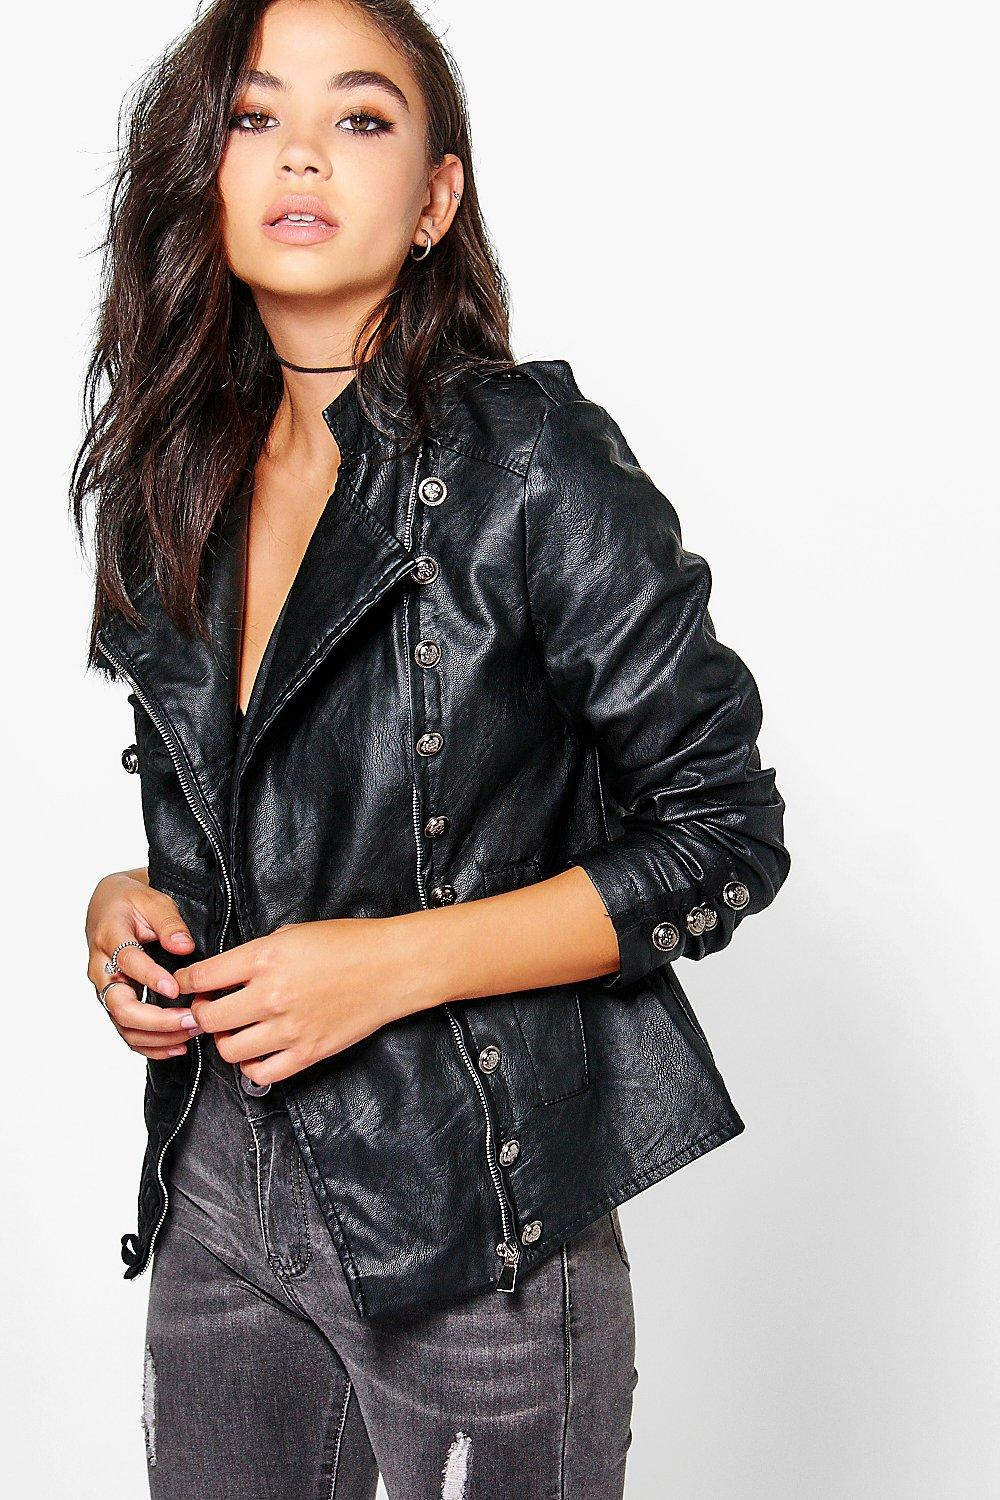 Leather jacket boohoo - Gallery Women S Military Jackets